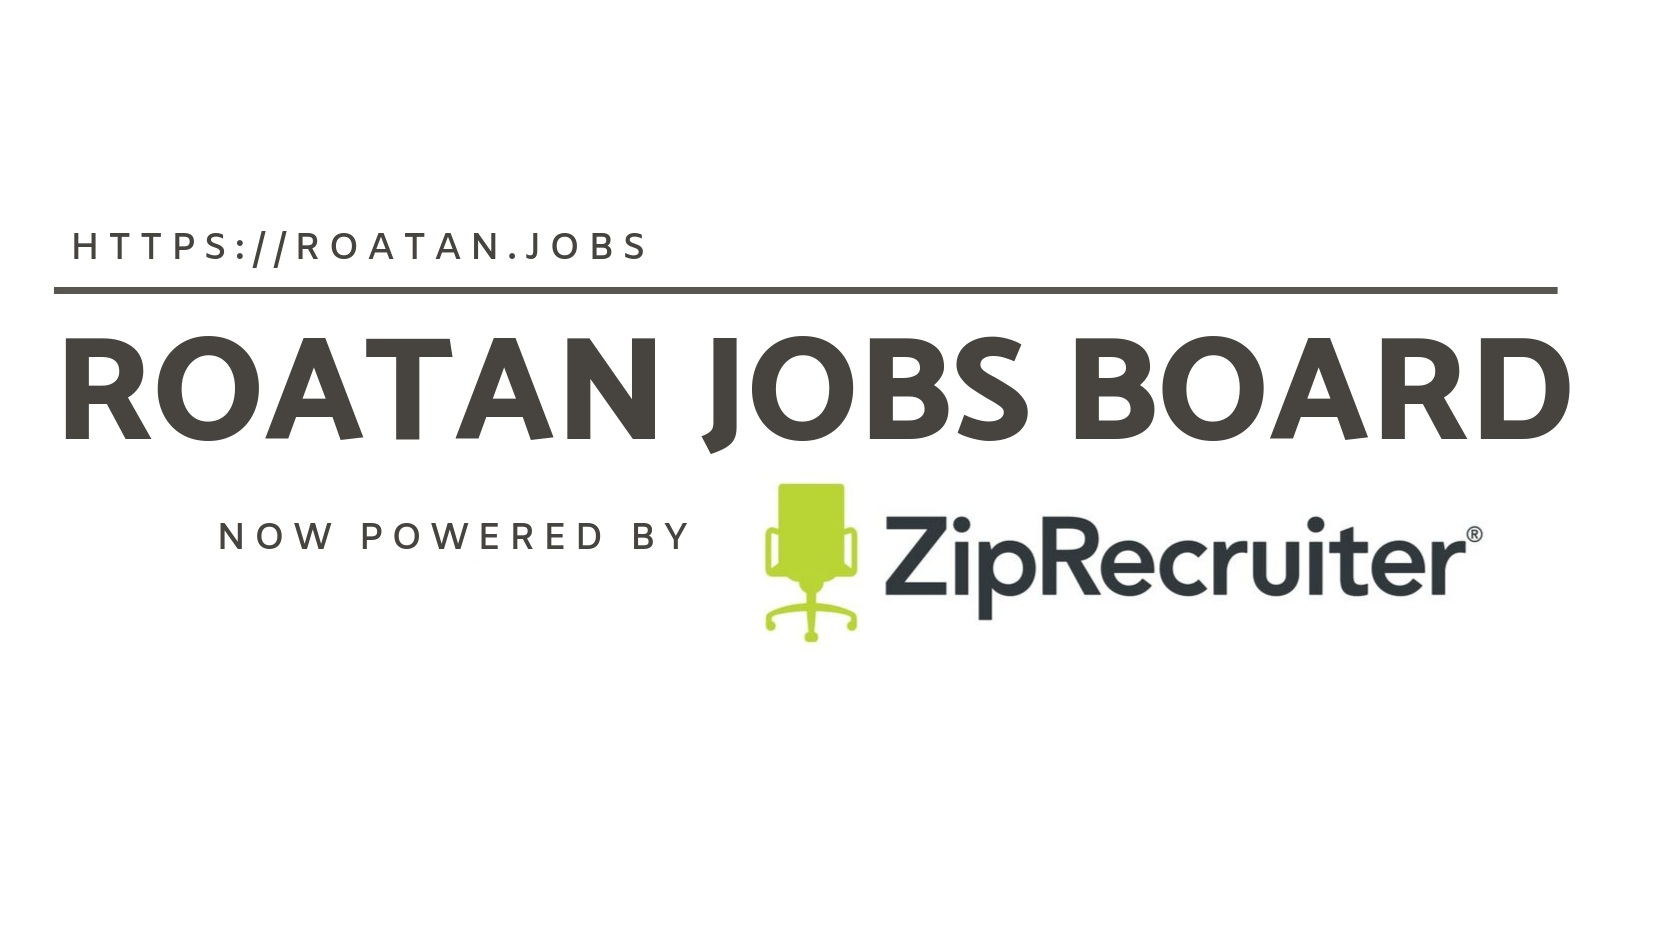 Roatan Jobs now powered by ZipRecruiter